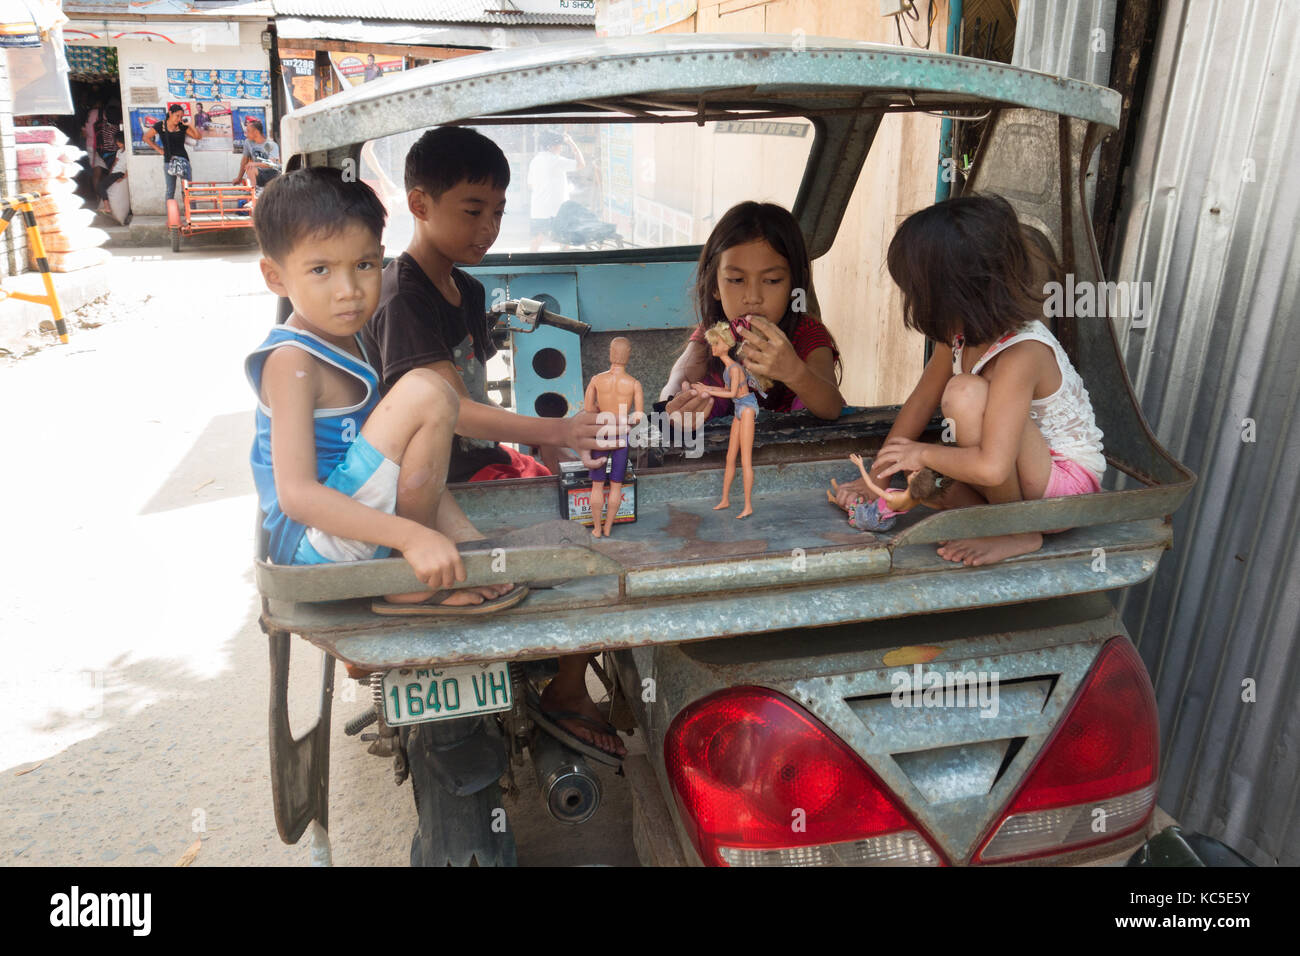 Filipino children playing with dolls  in the back of a taxi, Cebu city, Cebu, Philippines - Stock Image